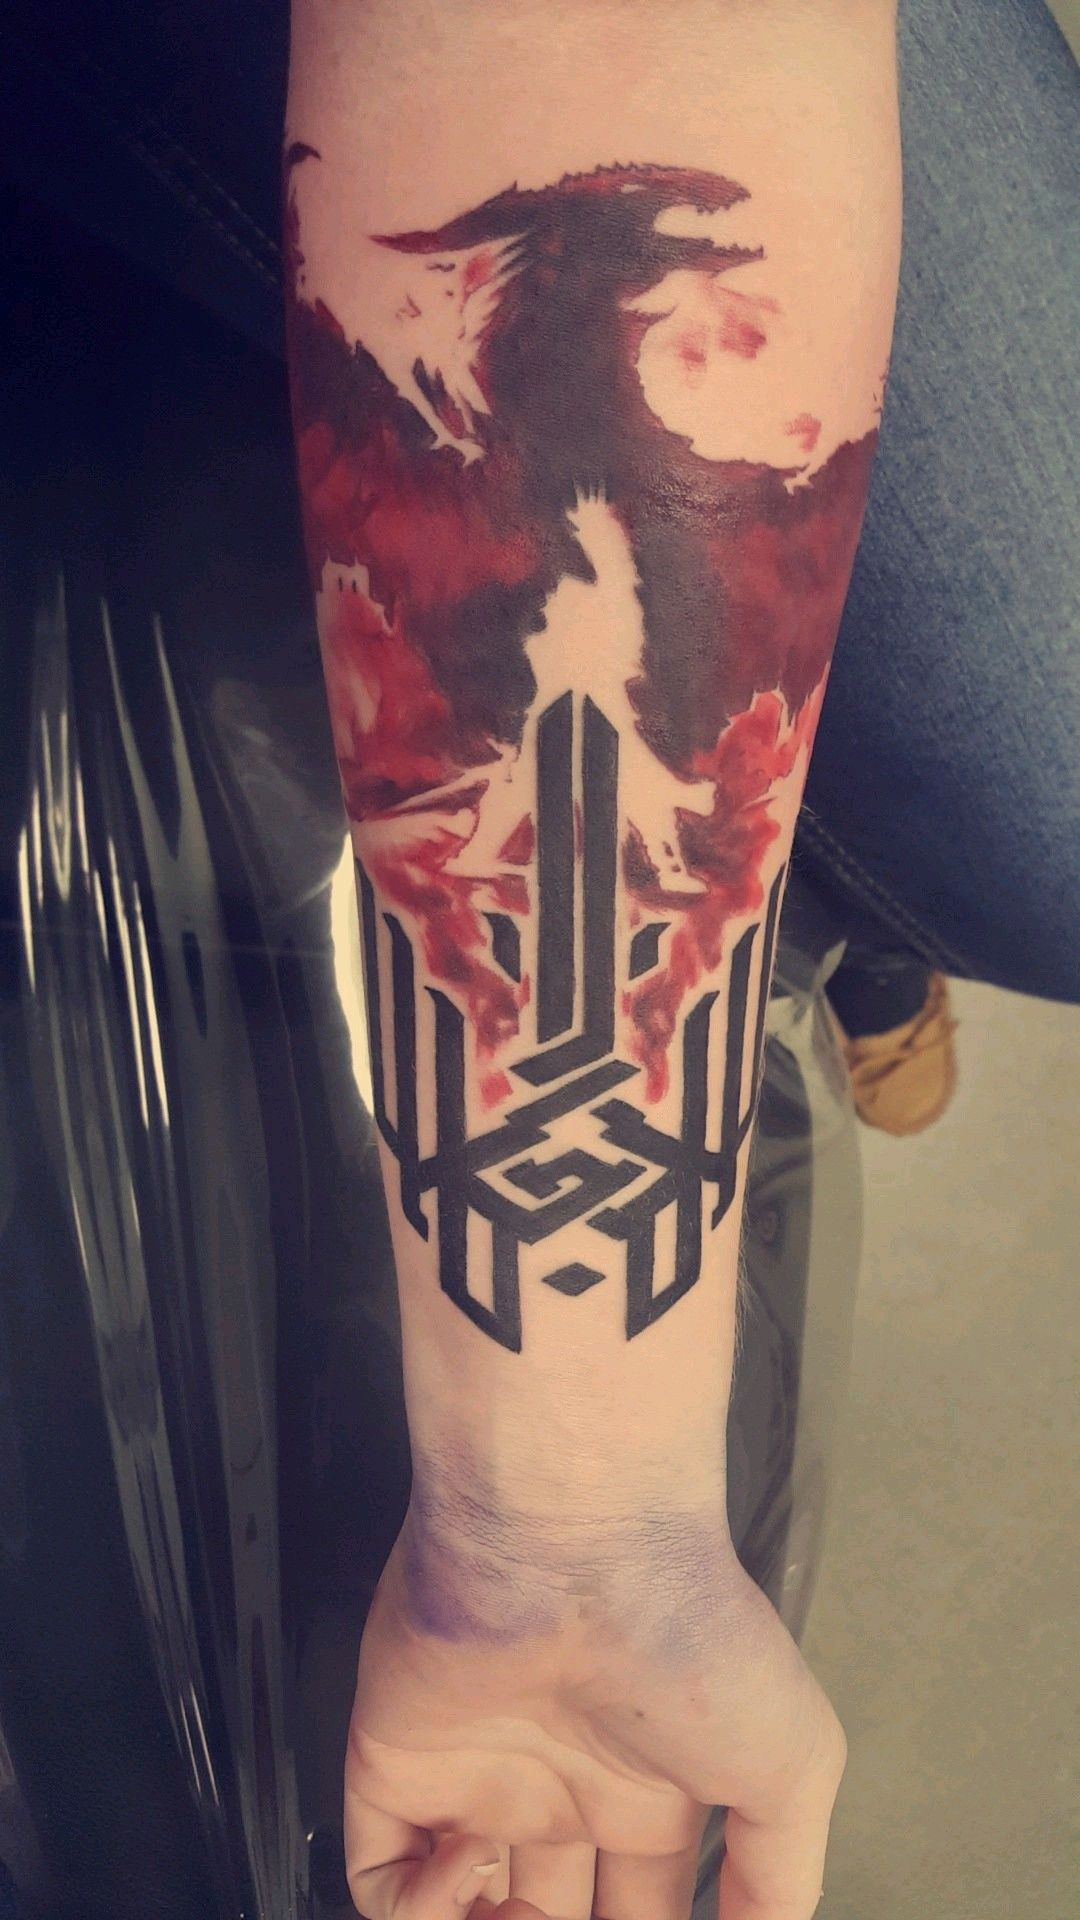 Dragon Age Origins, Dragon Age II, and Dragon Age Inquisition in one tattoo. Fucking awesome.